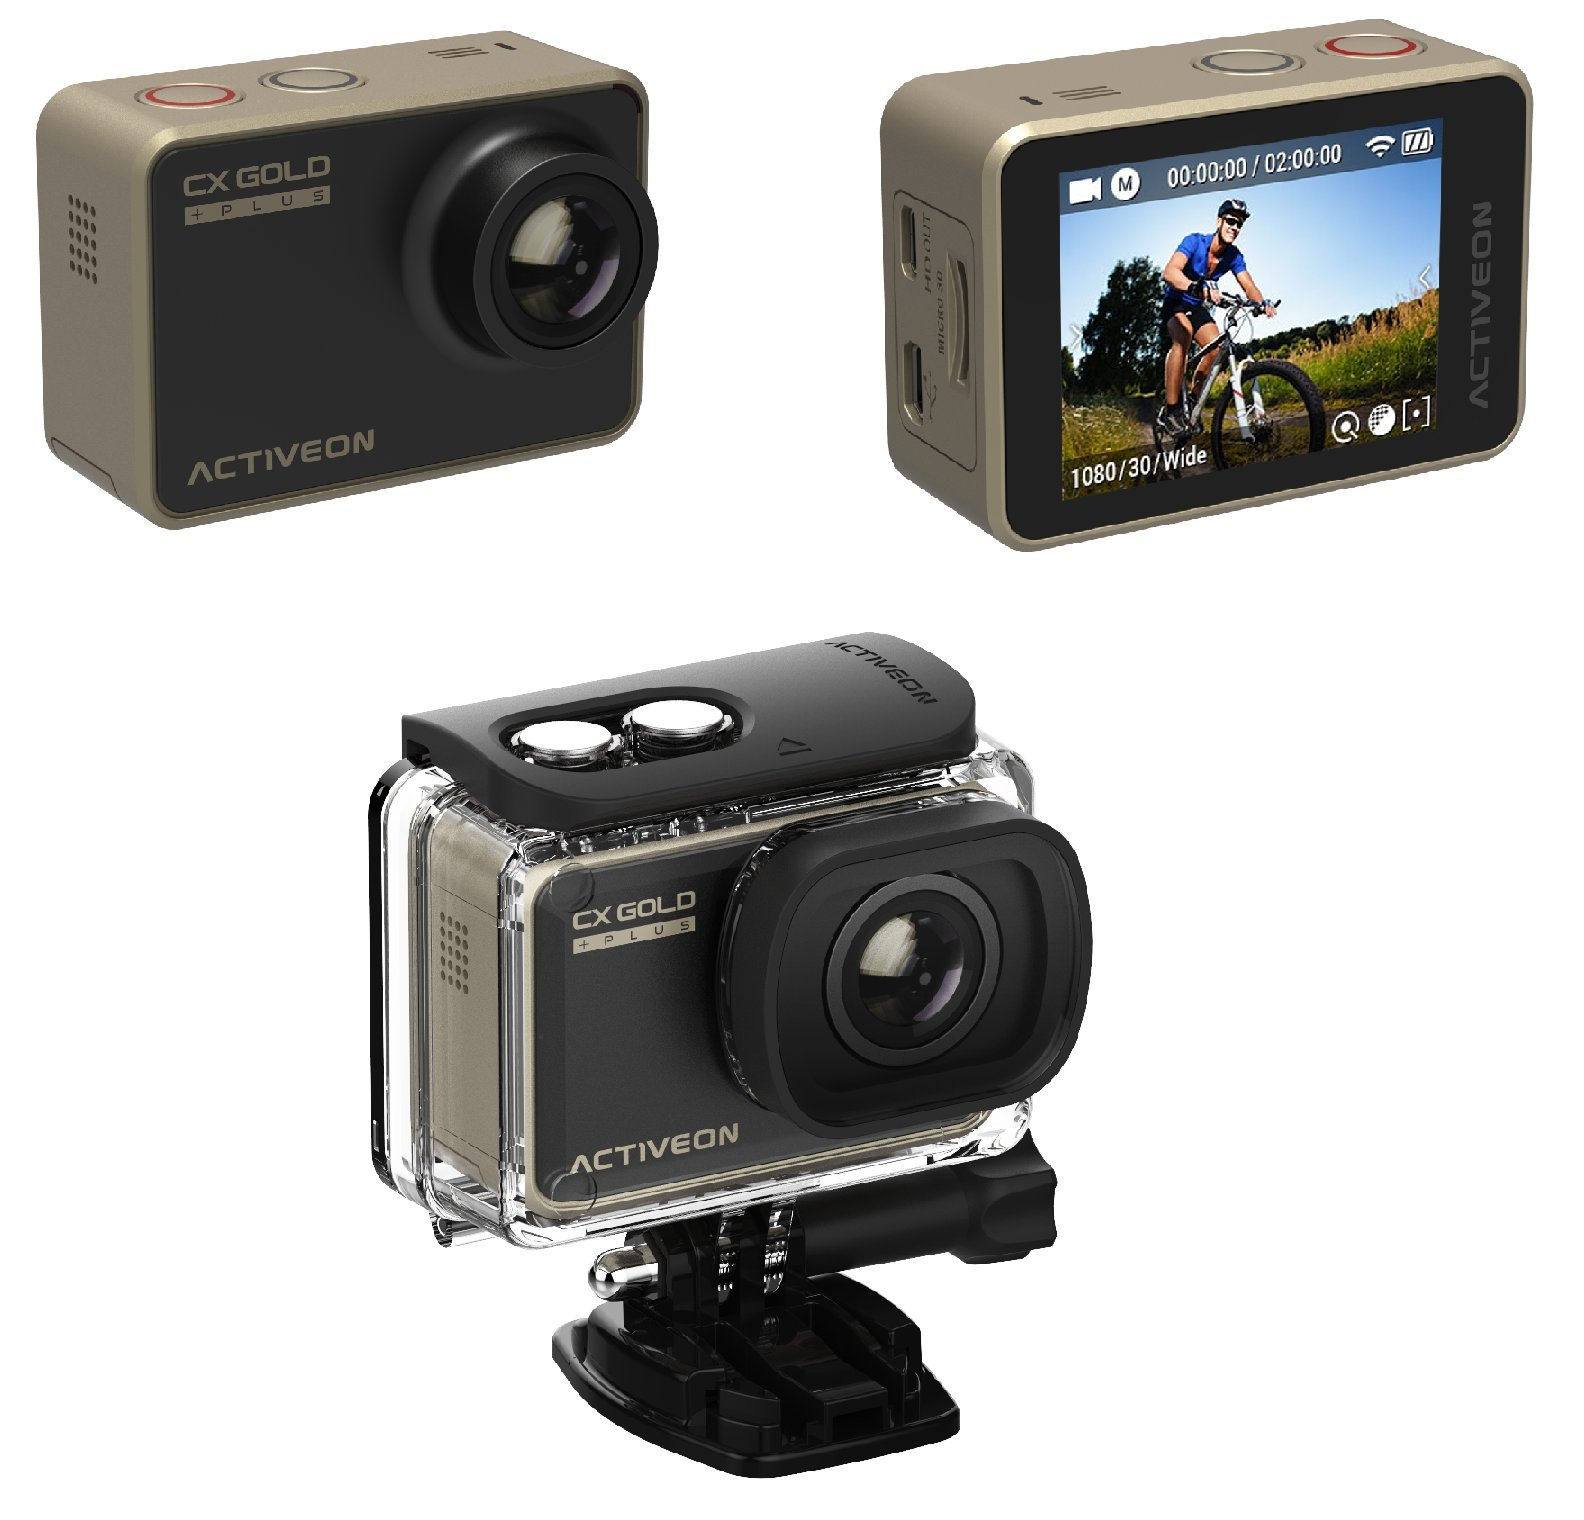 ACTIVEON 16 Waterproof CX PLUS Digital with 2'' LCD, Gold (CGB10W)